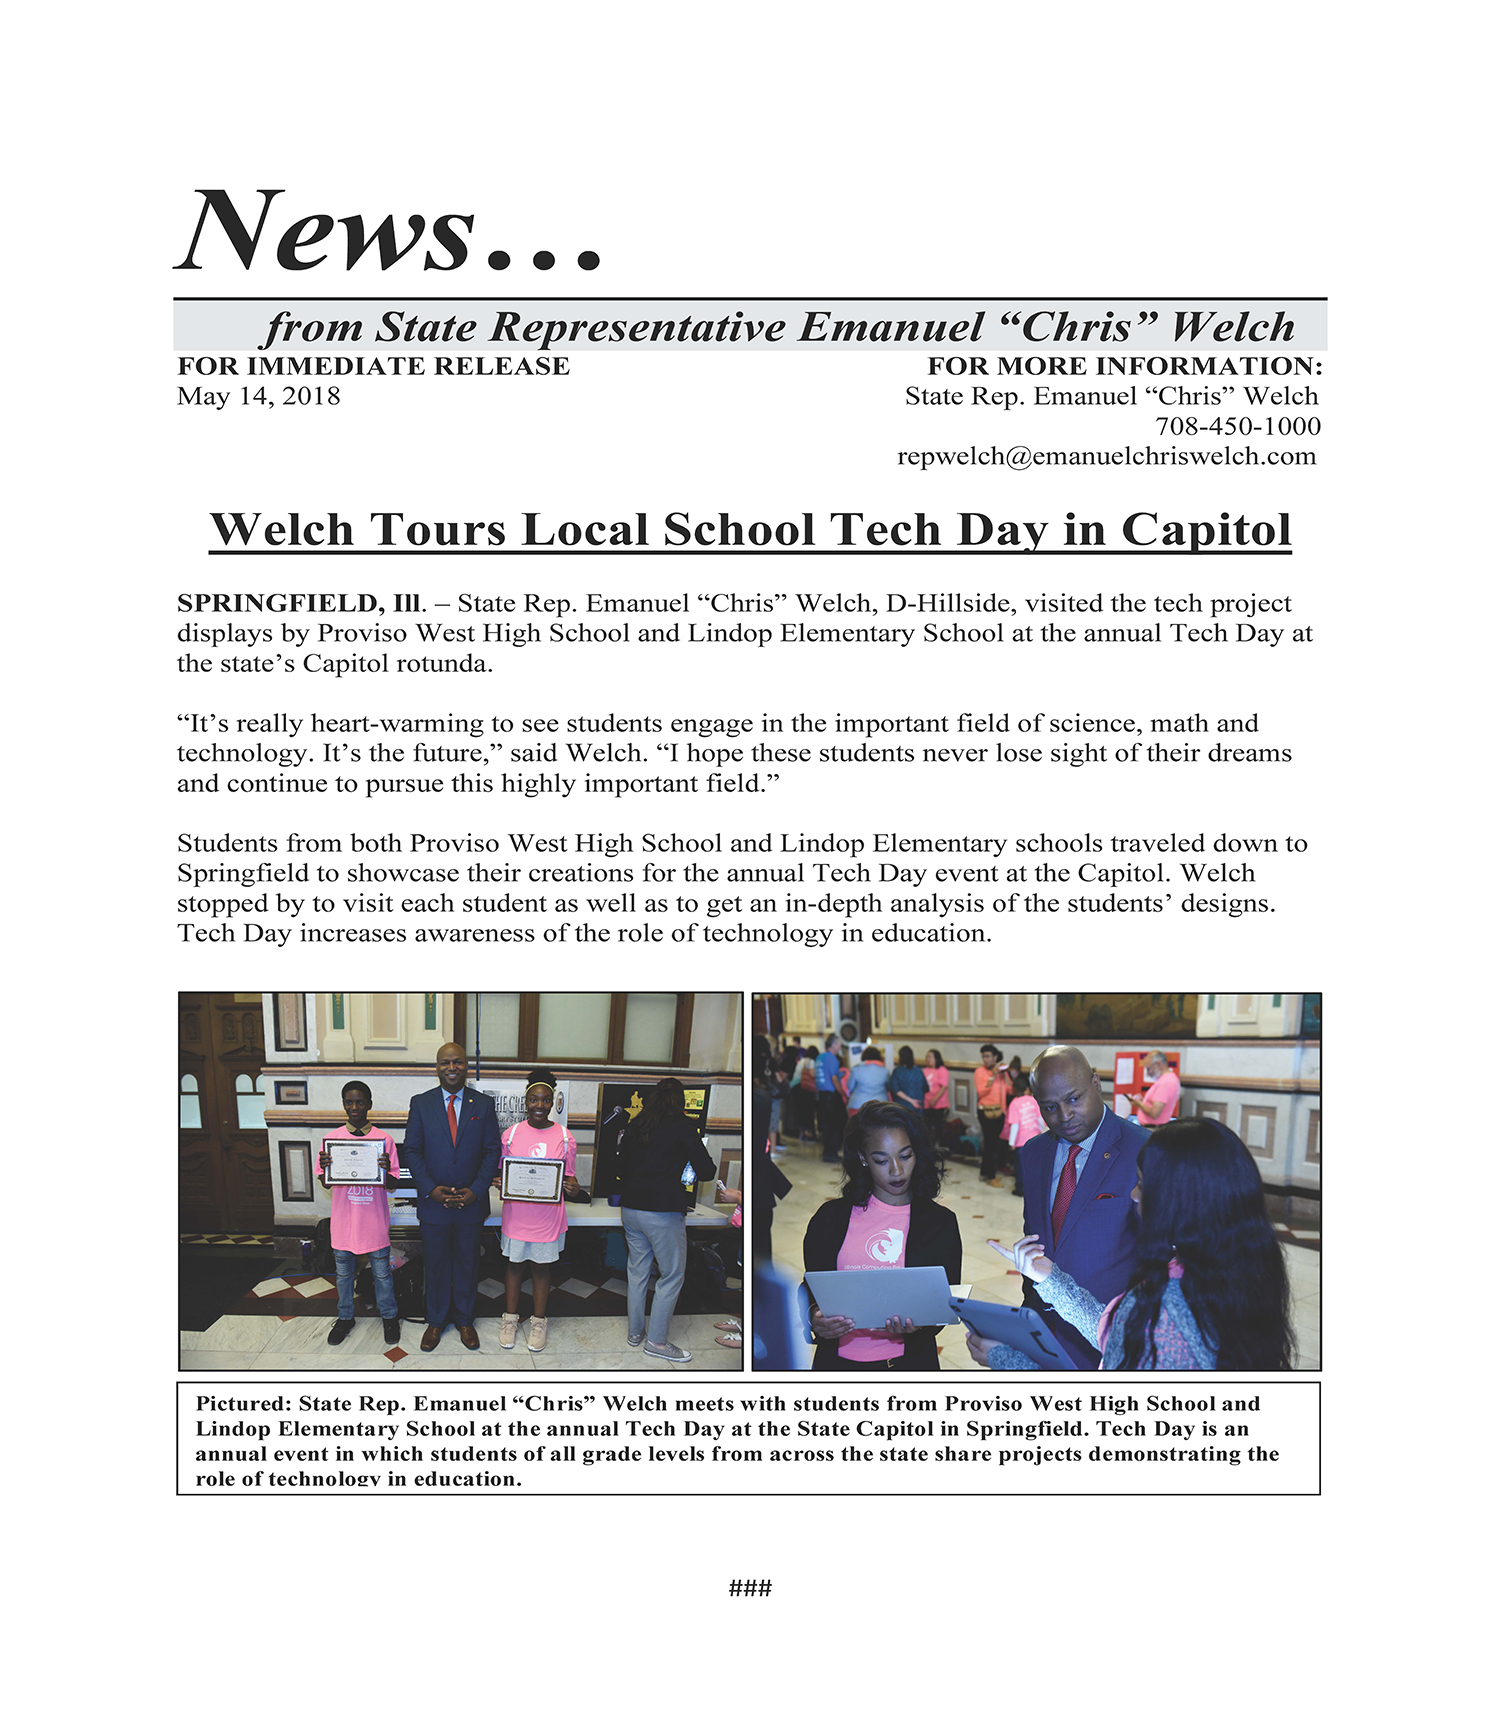 Welch Tours Local School Tech Day in Capitol  (May 14, 2018)